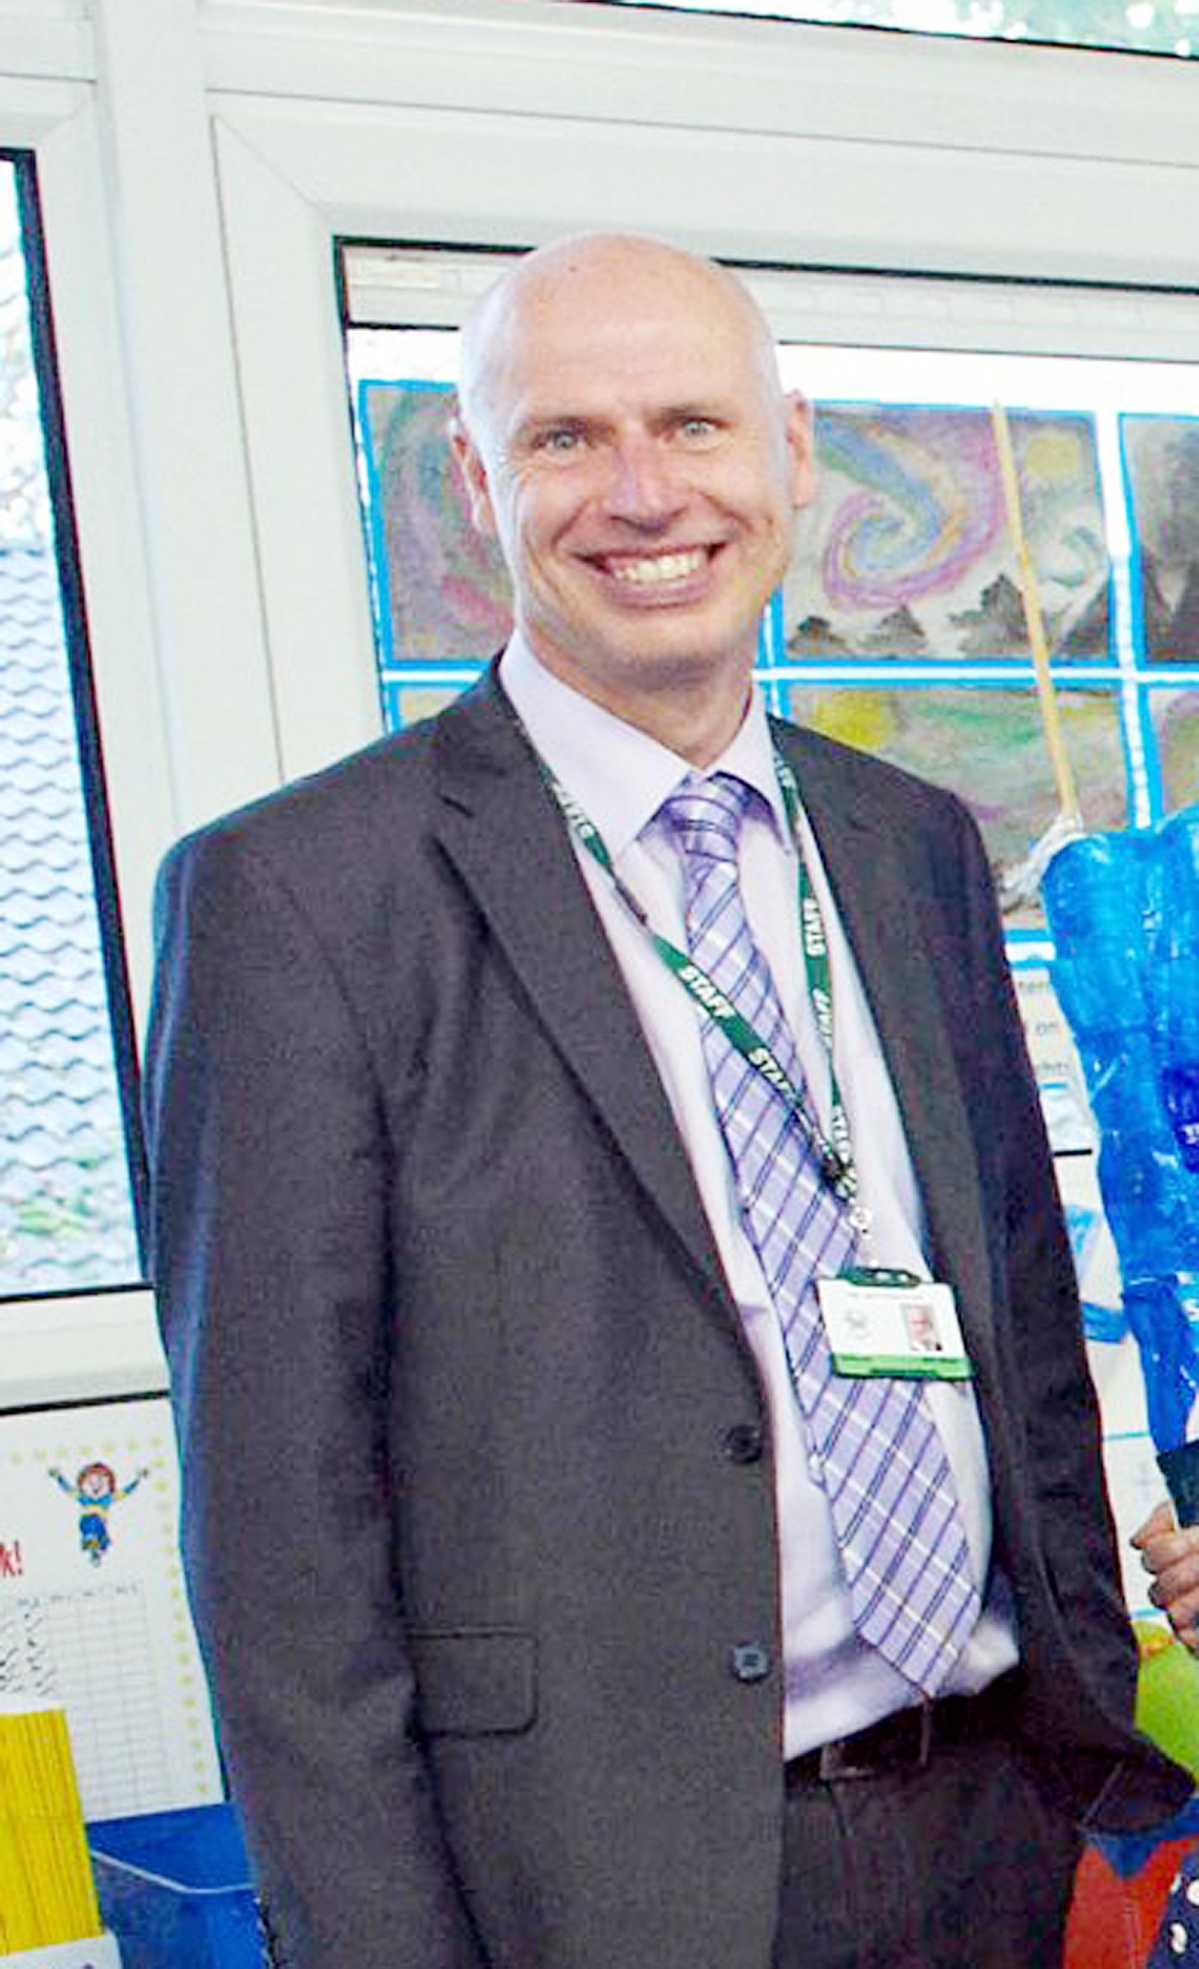 Headteacher offers his resignation so he can fly to Brazil to watch World Cup